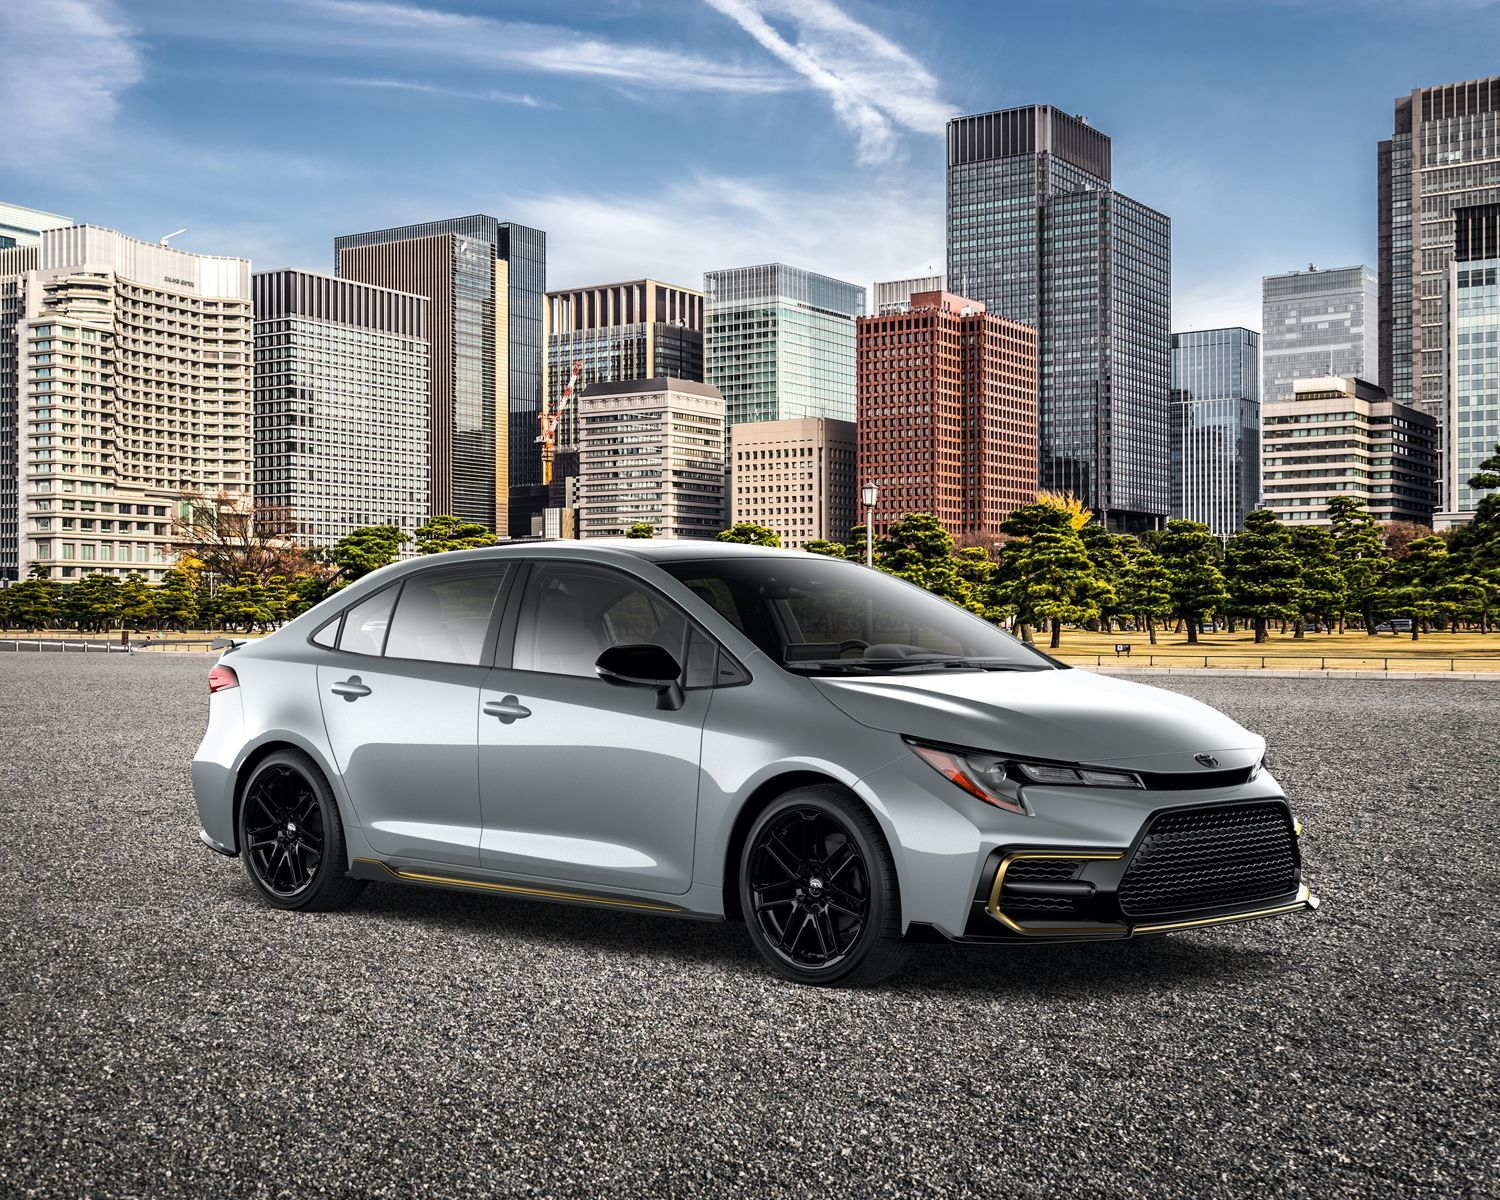 2021 Corolla special edition with city in the backgrounf